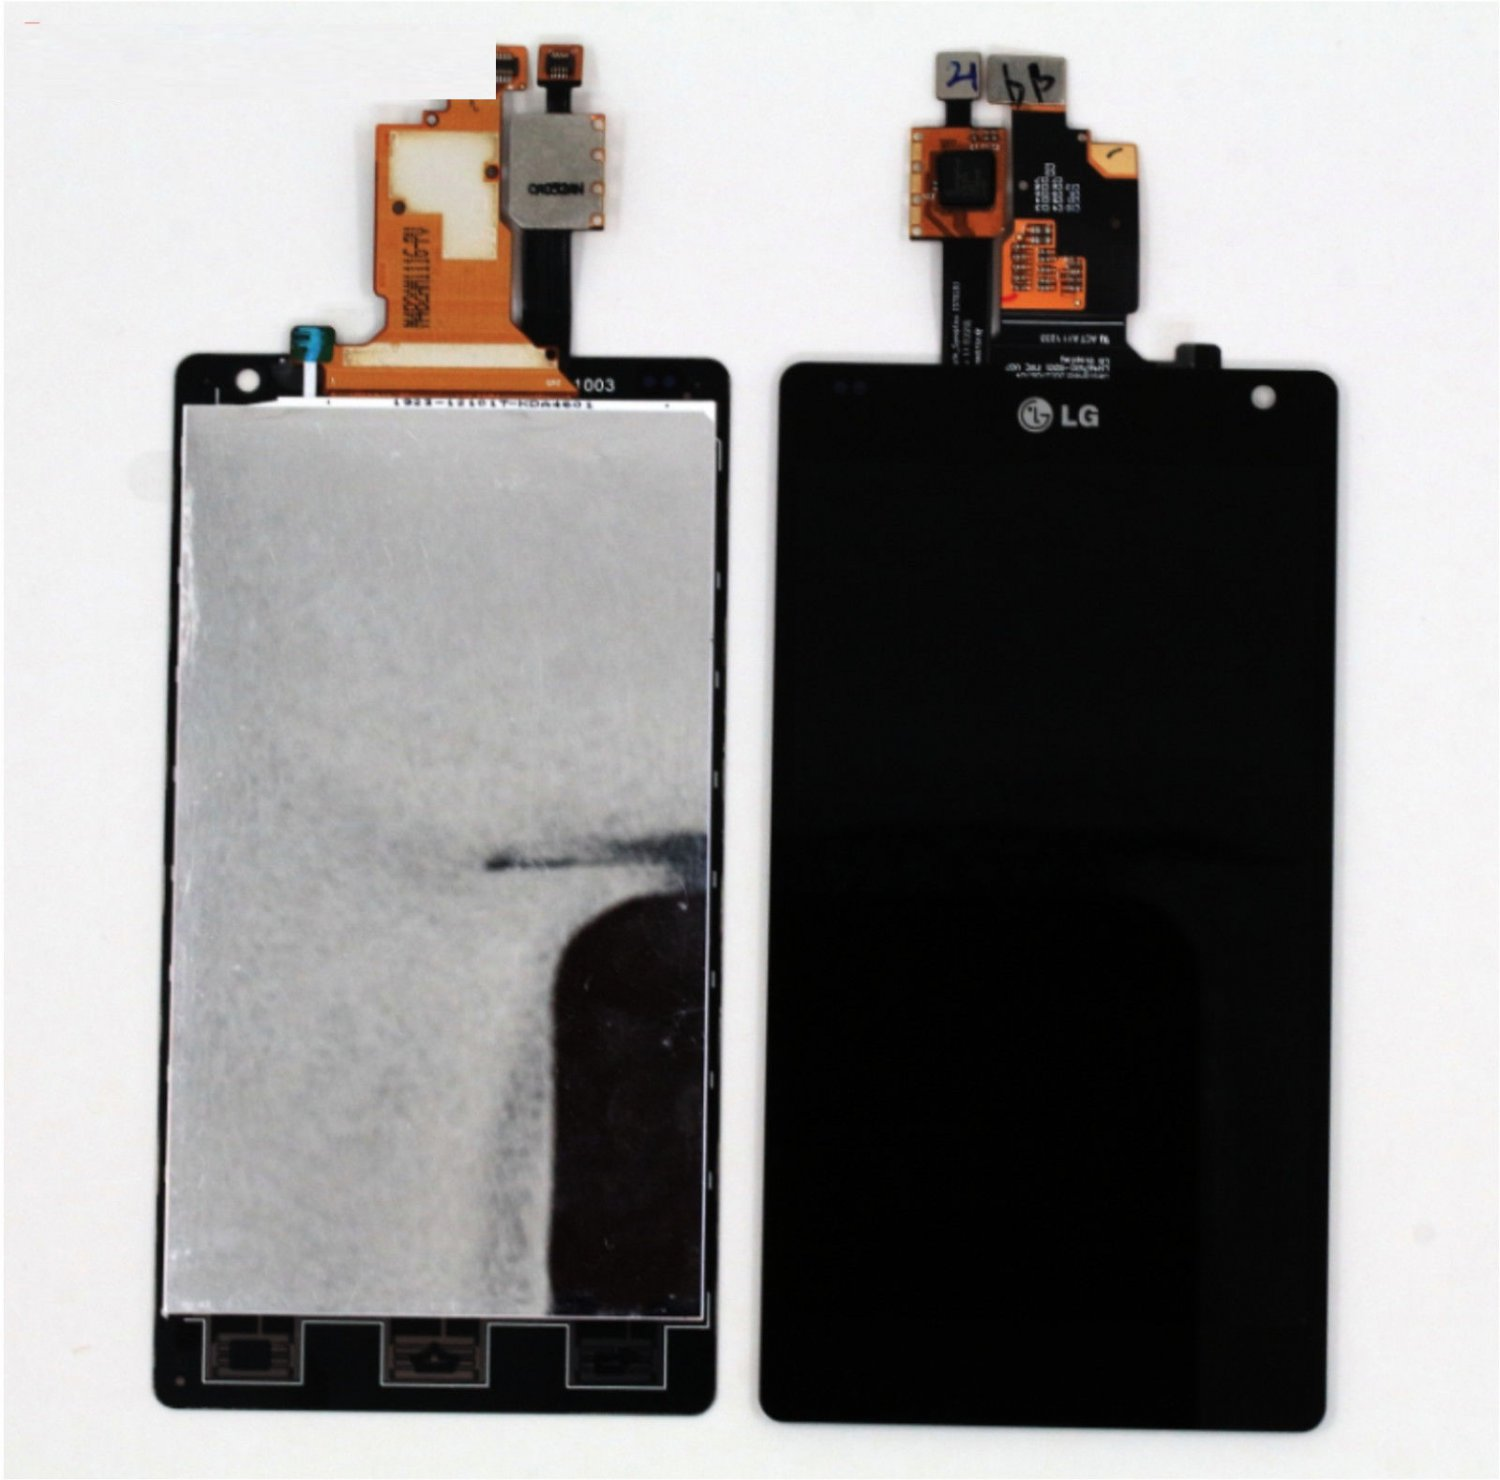 OEM Digitizer Touch + LCD Display Screen Assembly AT&T LG Optimus G E970